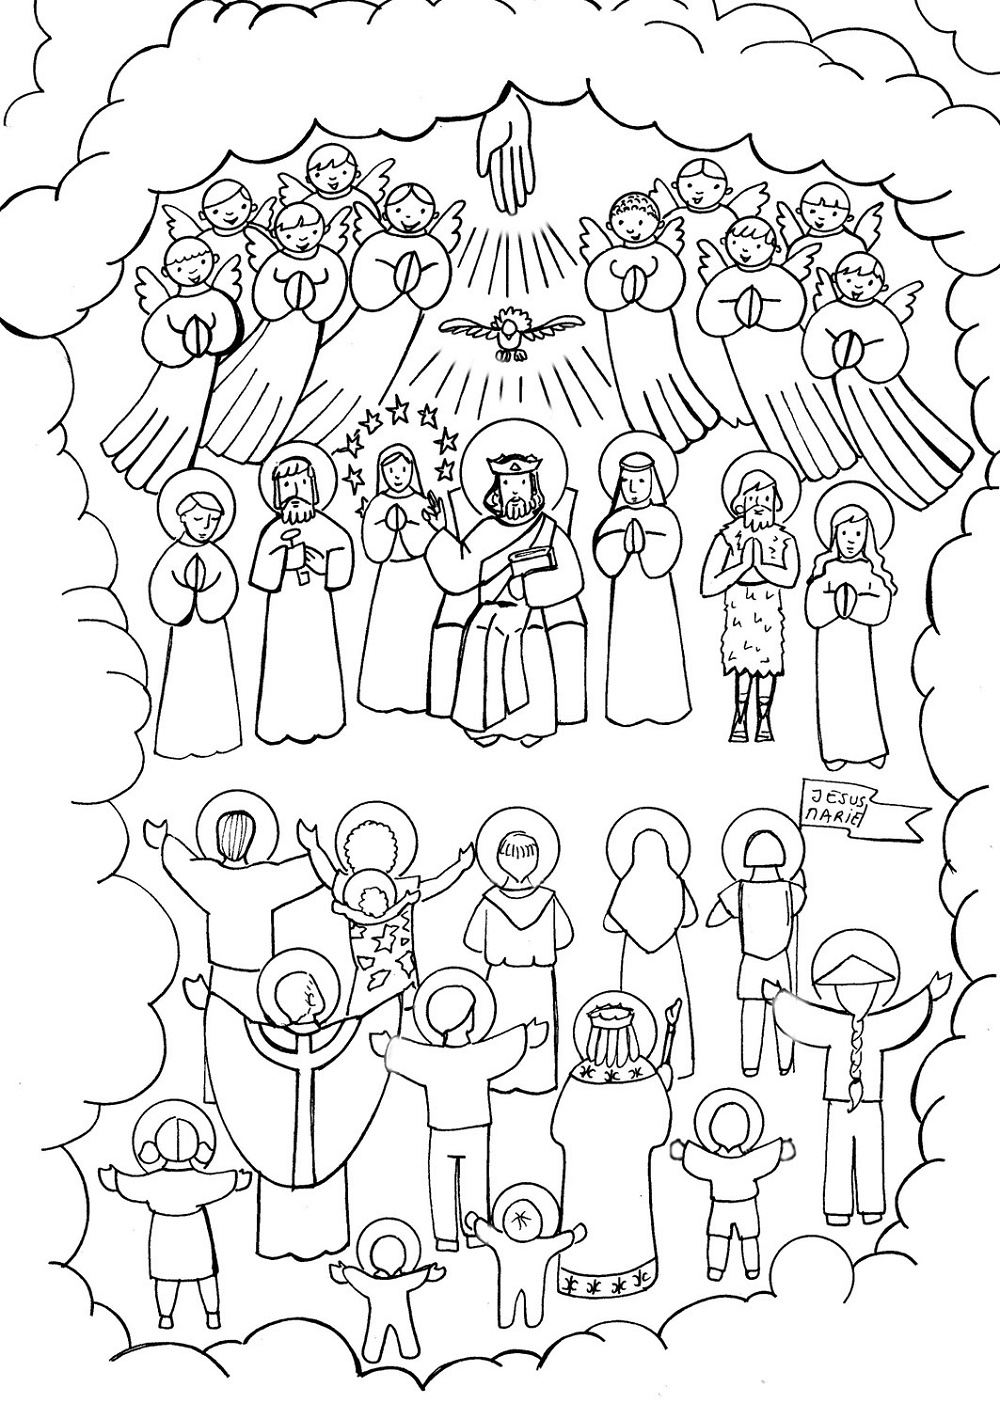 All Saints Day Coloring Pages Catholic Saints